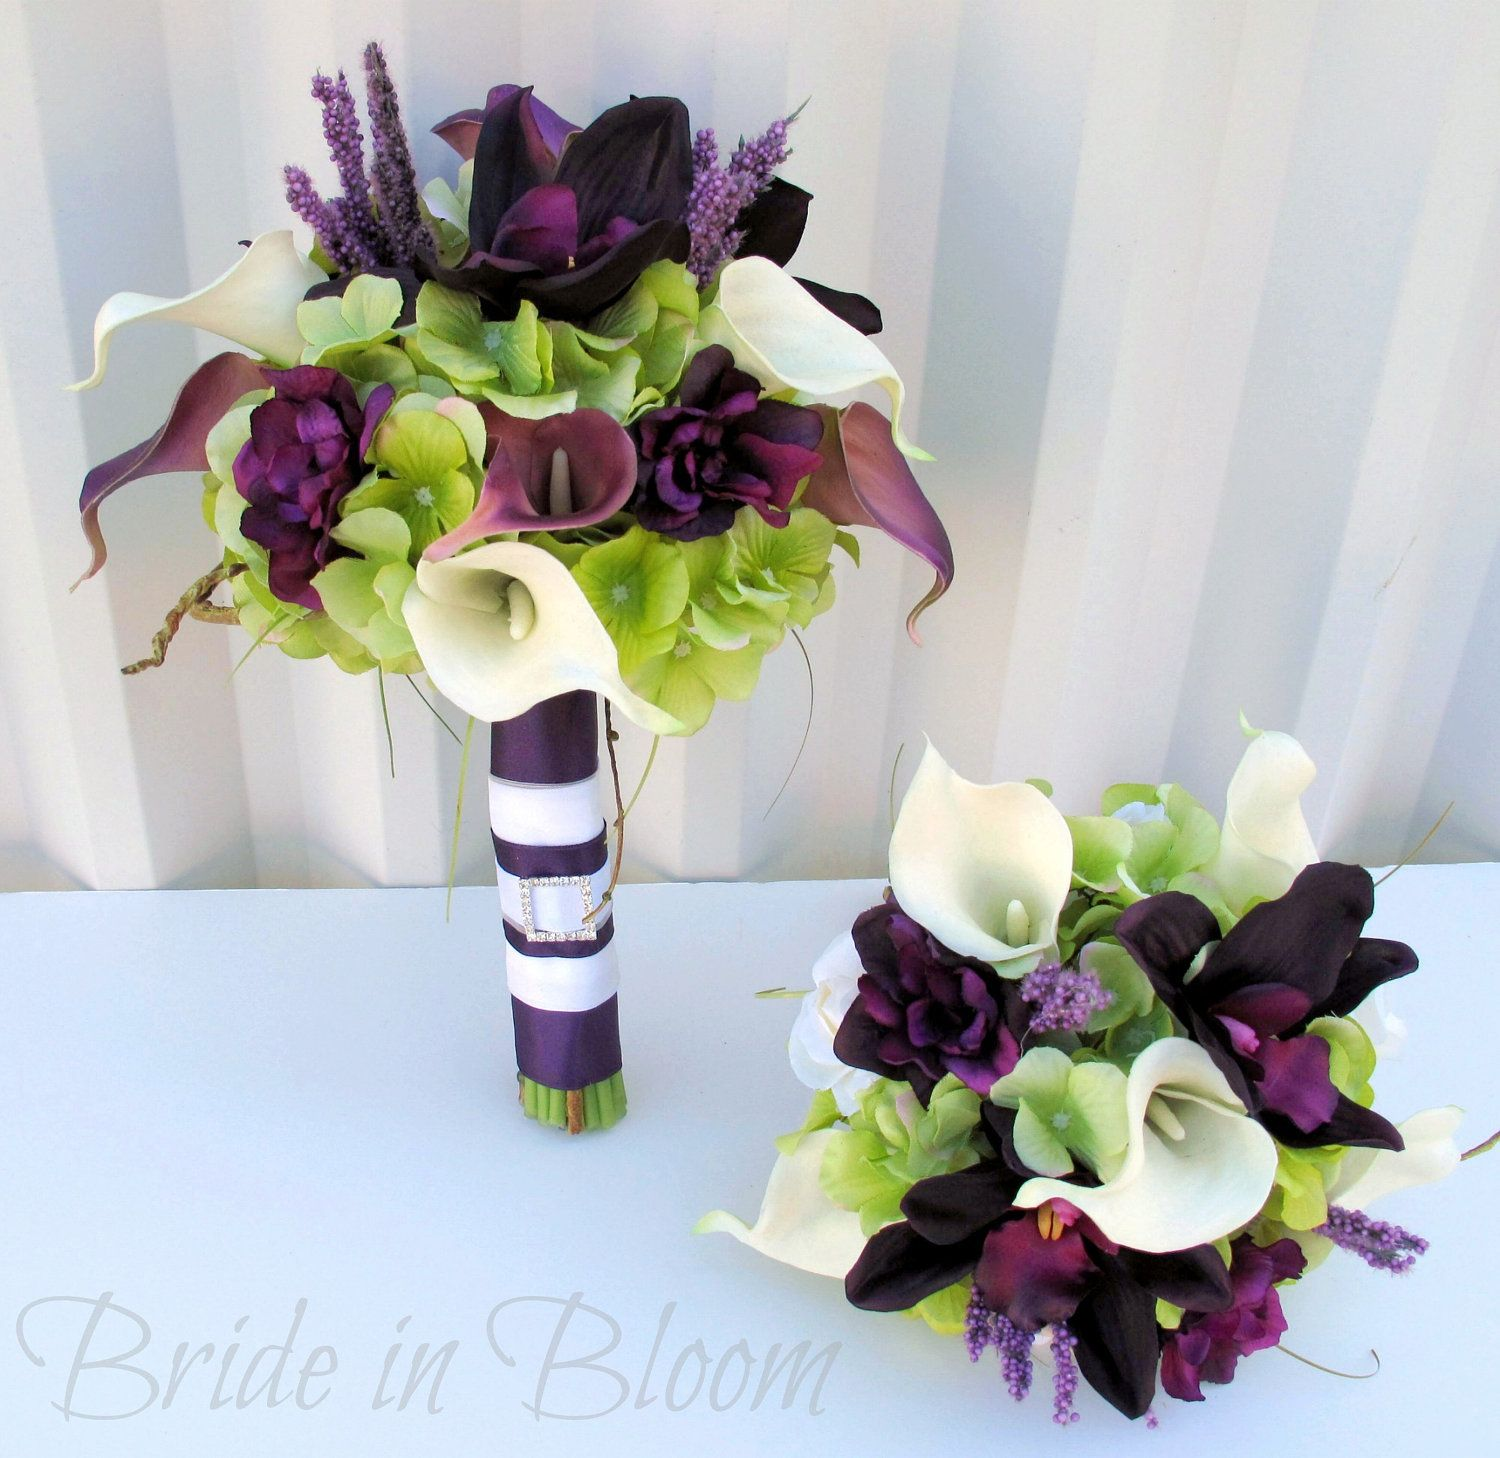 Plum wedding bouquet 3 piece set real touch wedding flowers plum wedding bouquet 3 piece set real touch wedding flowers calla lily orchid bridal dhlflorist Choice Image